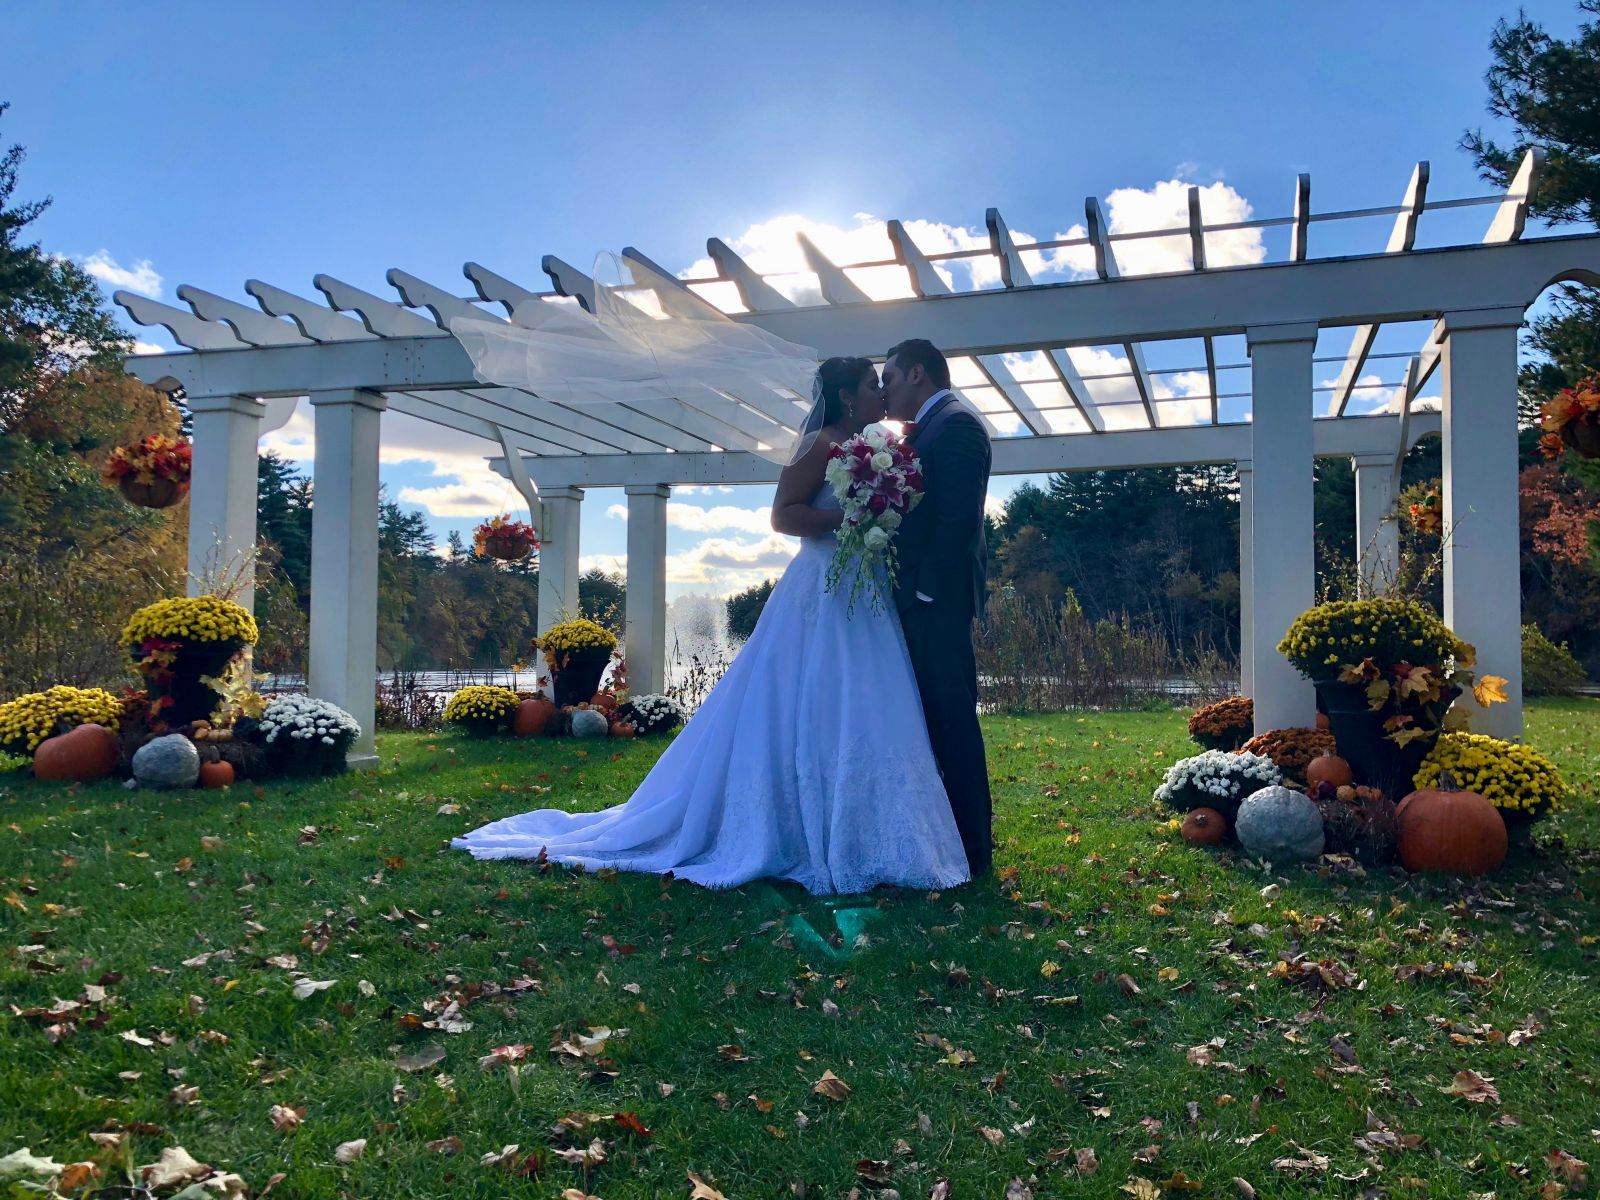 A bride and groom embrace on their wedding day at Butternut Farm Golf Club in Stow, Massachusetts